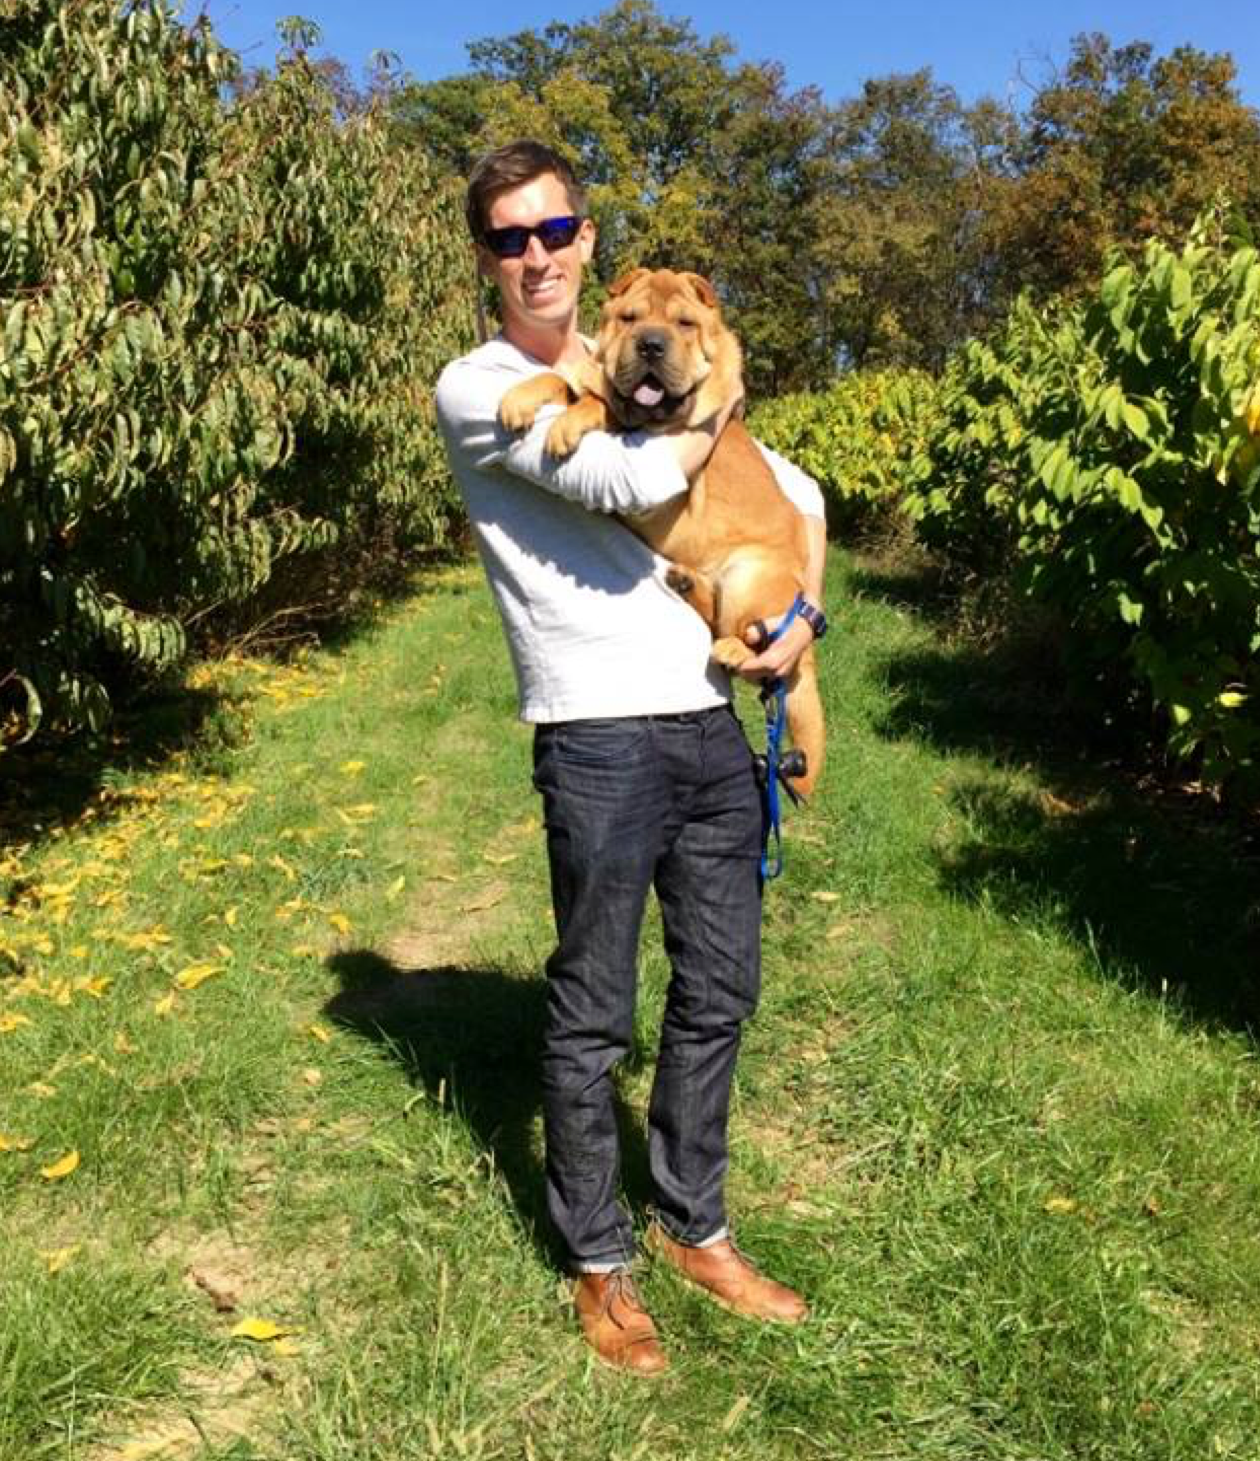 Pawlicy Advisor CEO Woody Mawhinney and his Shar Pei Wrigley